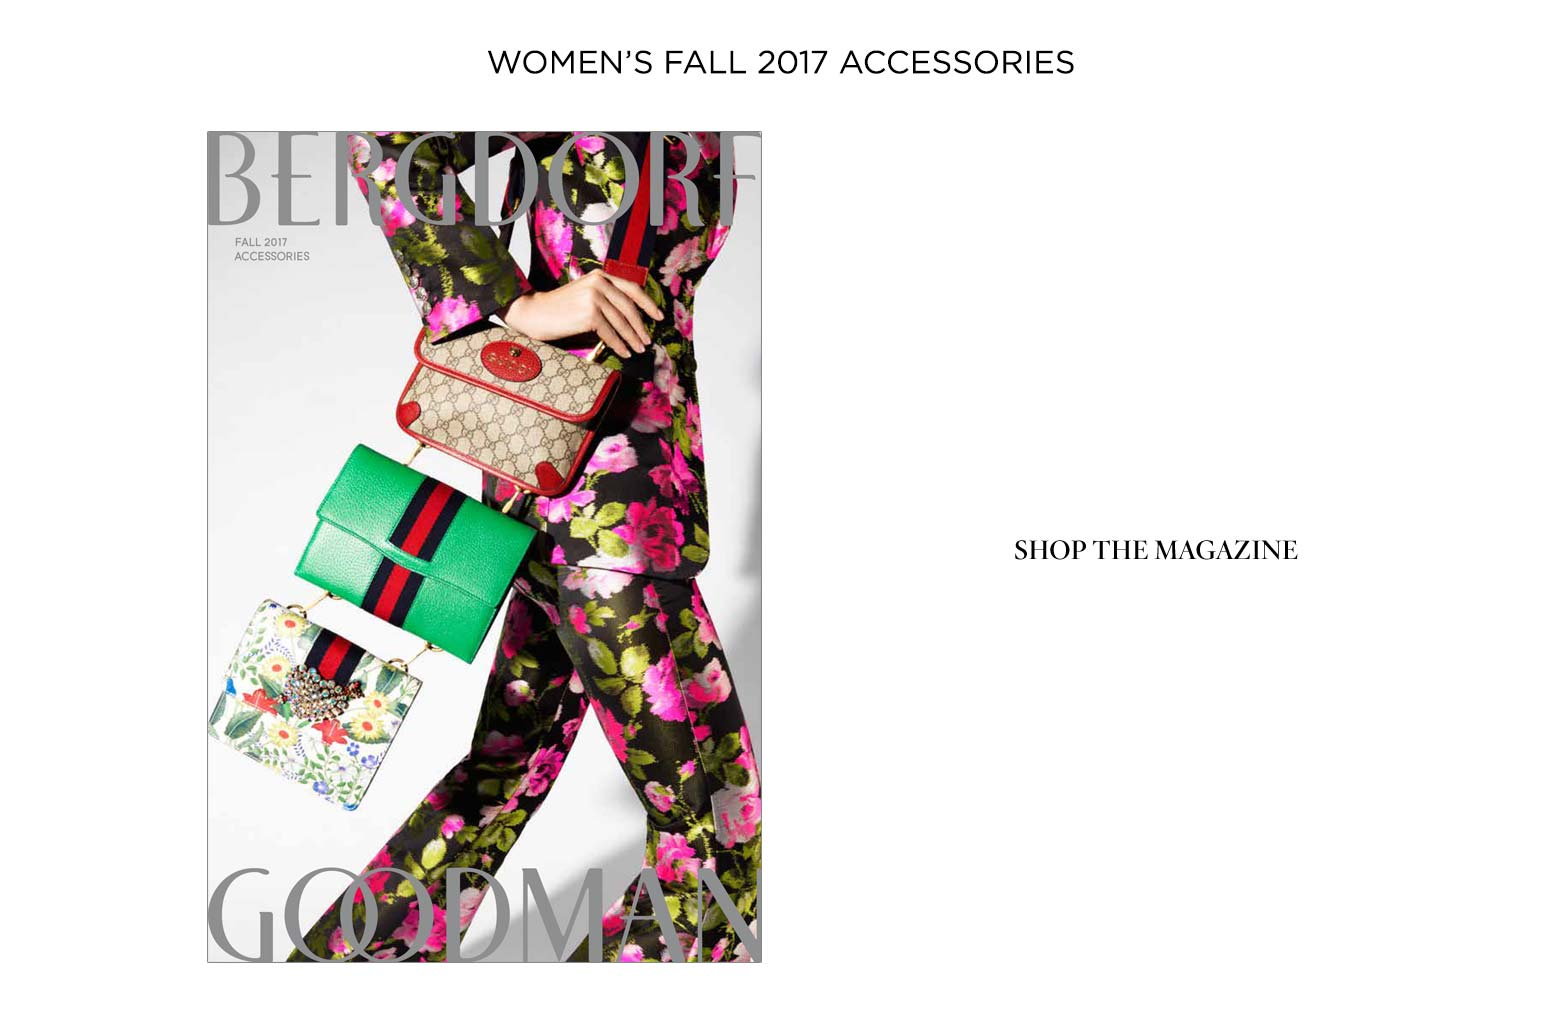 View the Accessories Magazine